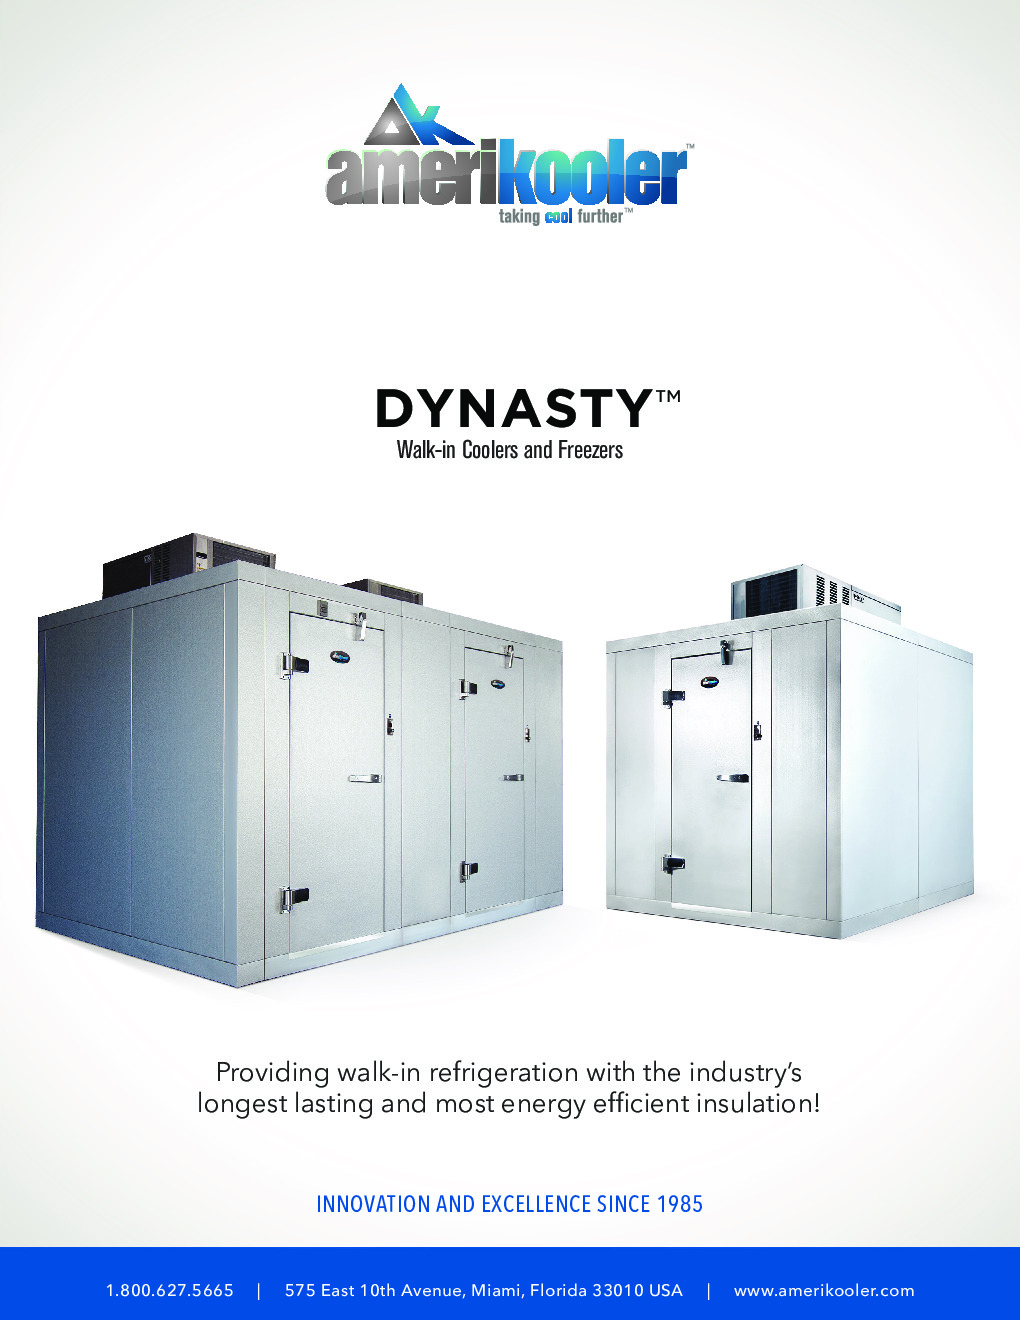 AmeriKooler DW091377N-6/7-SC 9' X 13' Walk-In Cooler, 7' L Cooler without Floor and 6' L Freezer, Self Contained